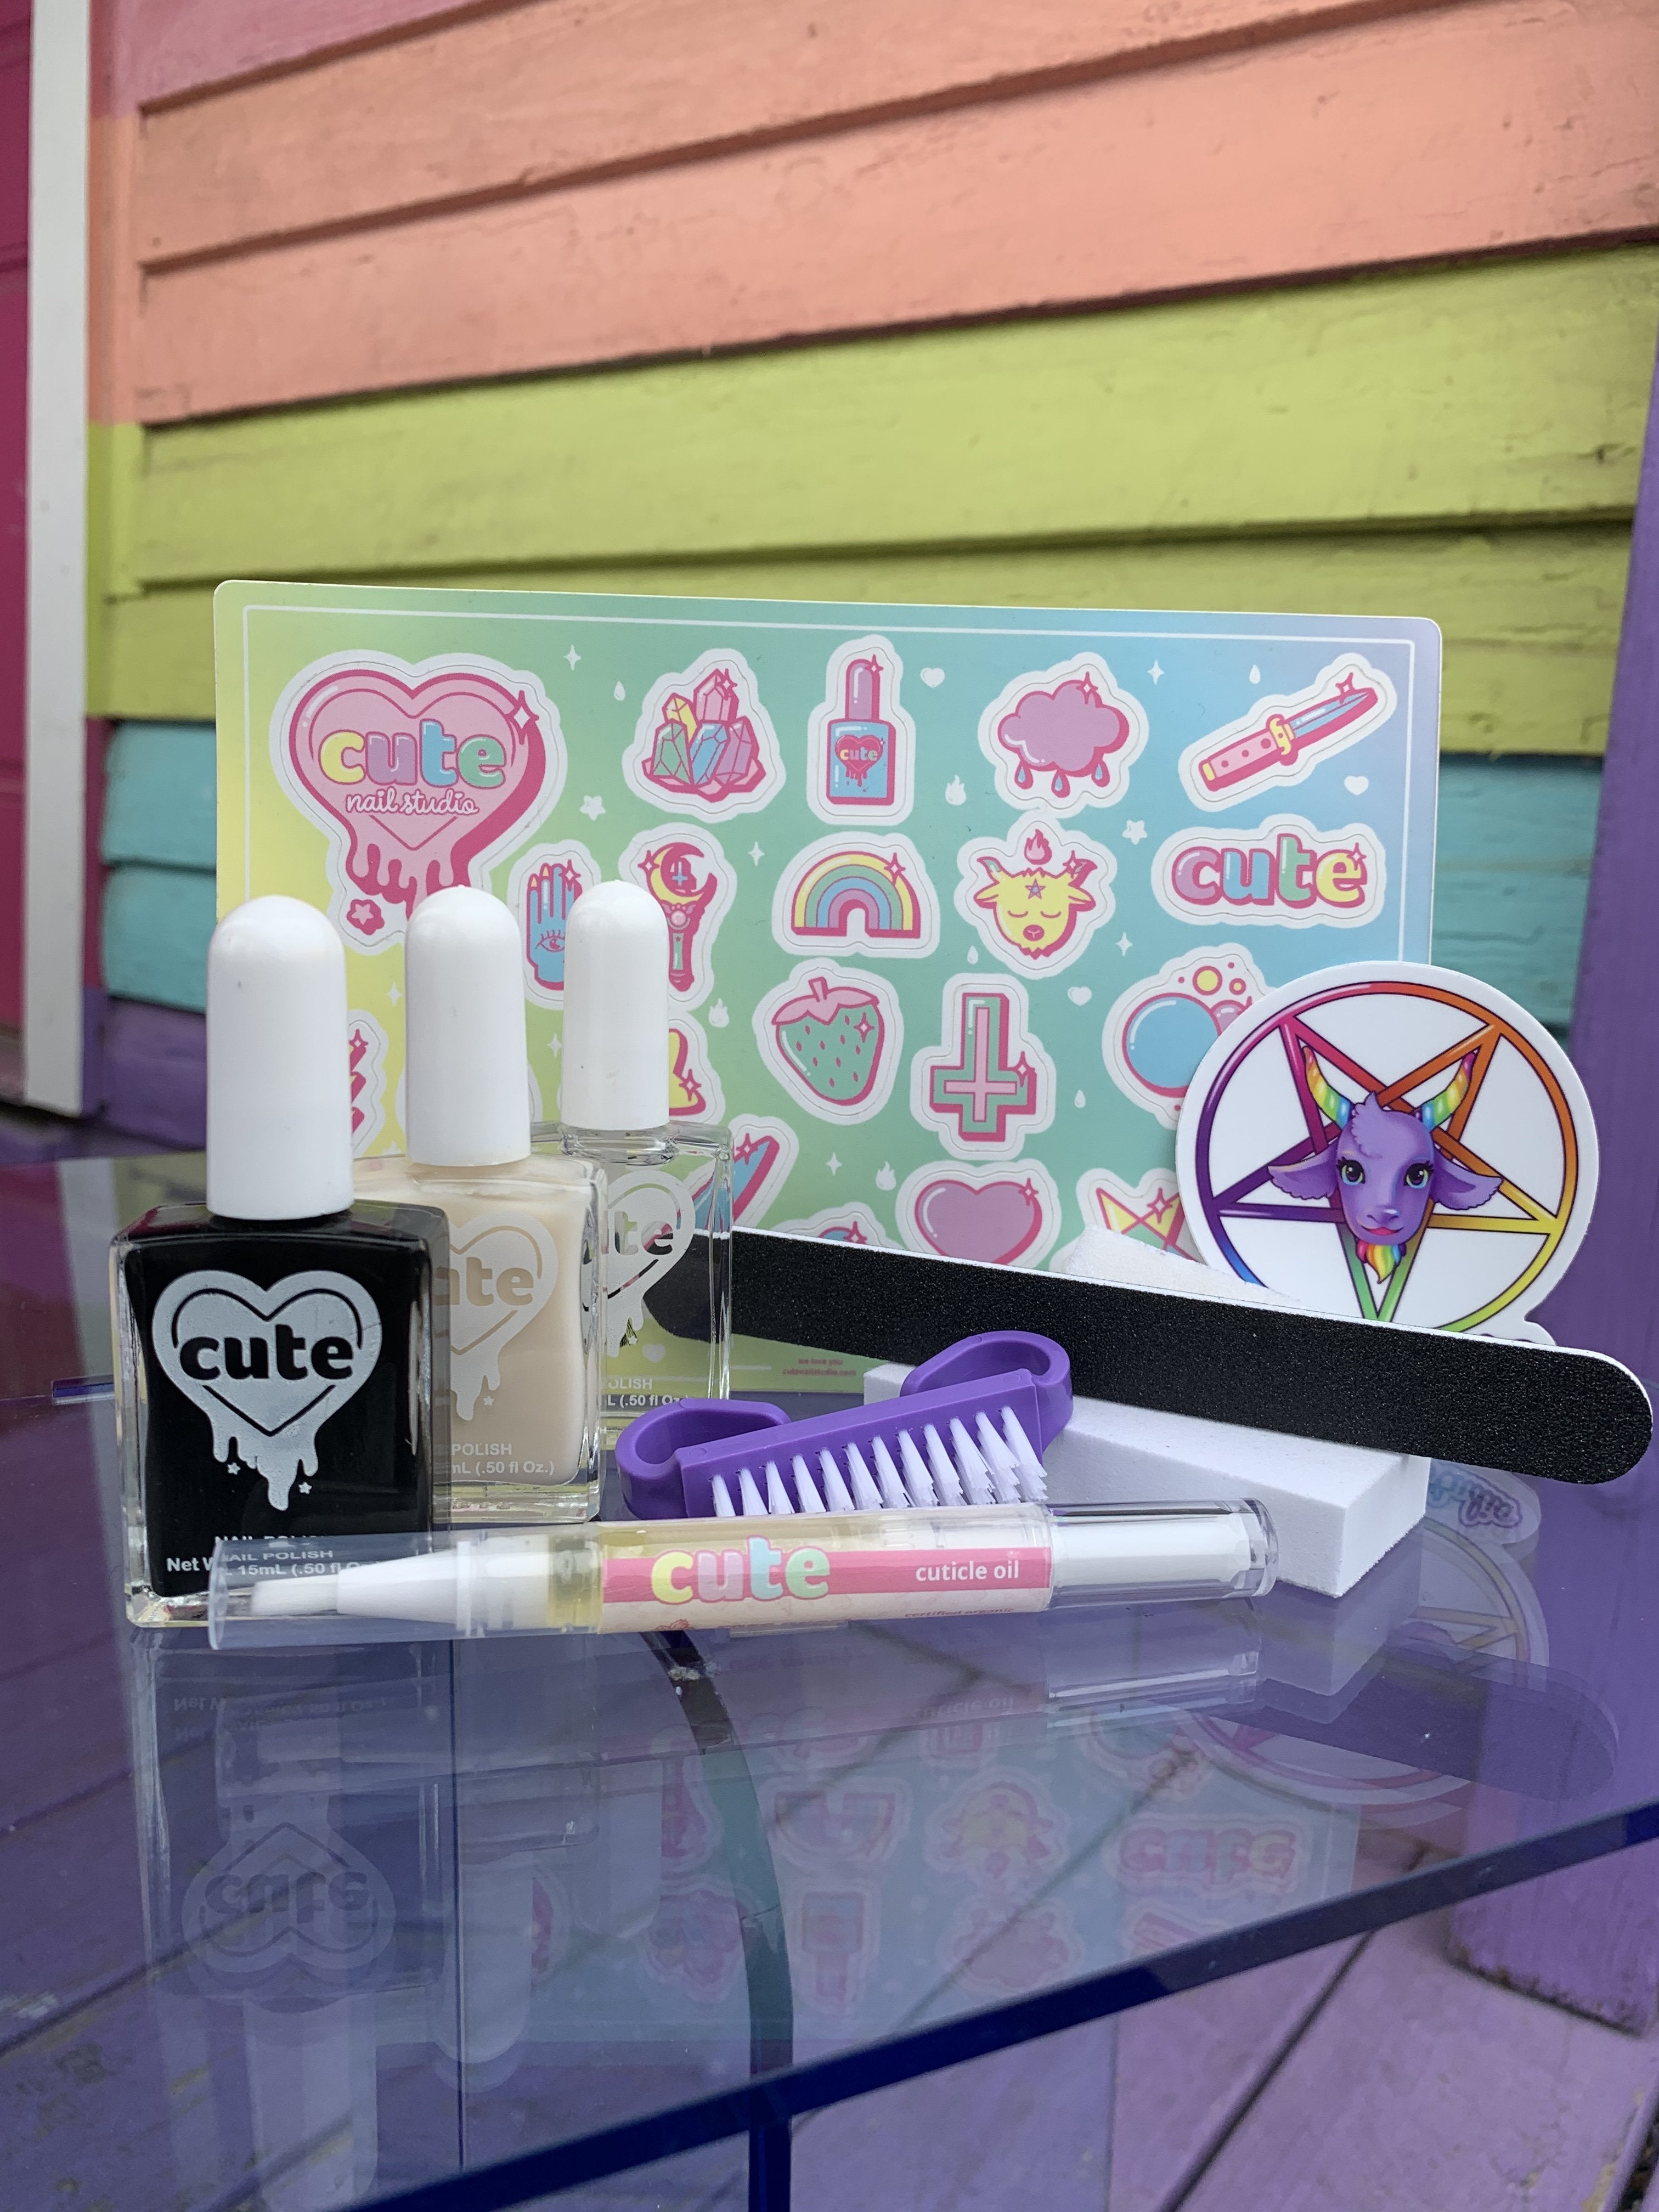 At Home Mani Kit